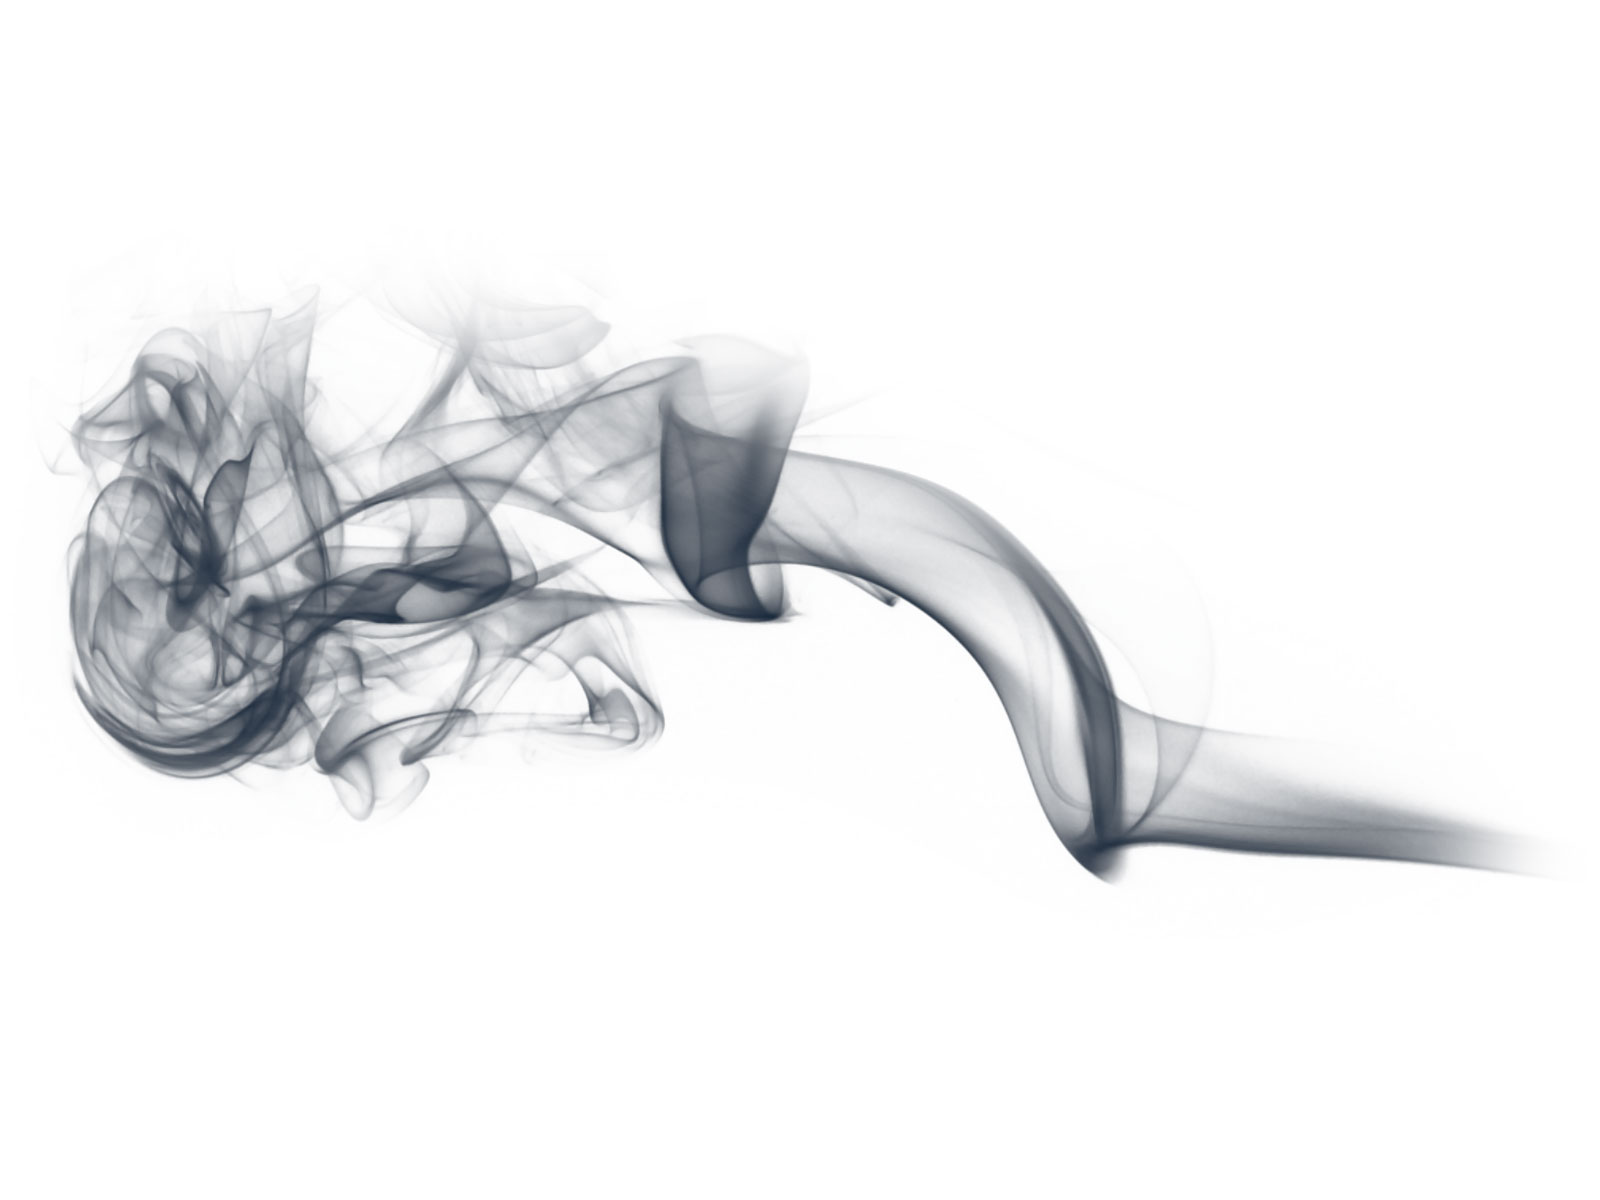 6 Smoke PSD Files Images